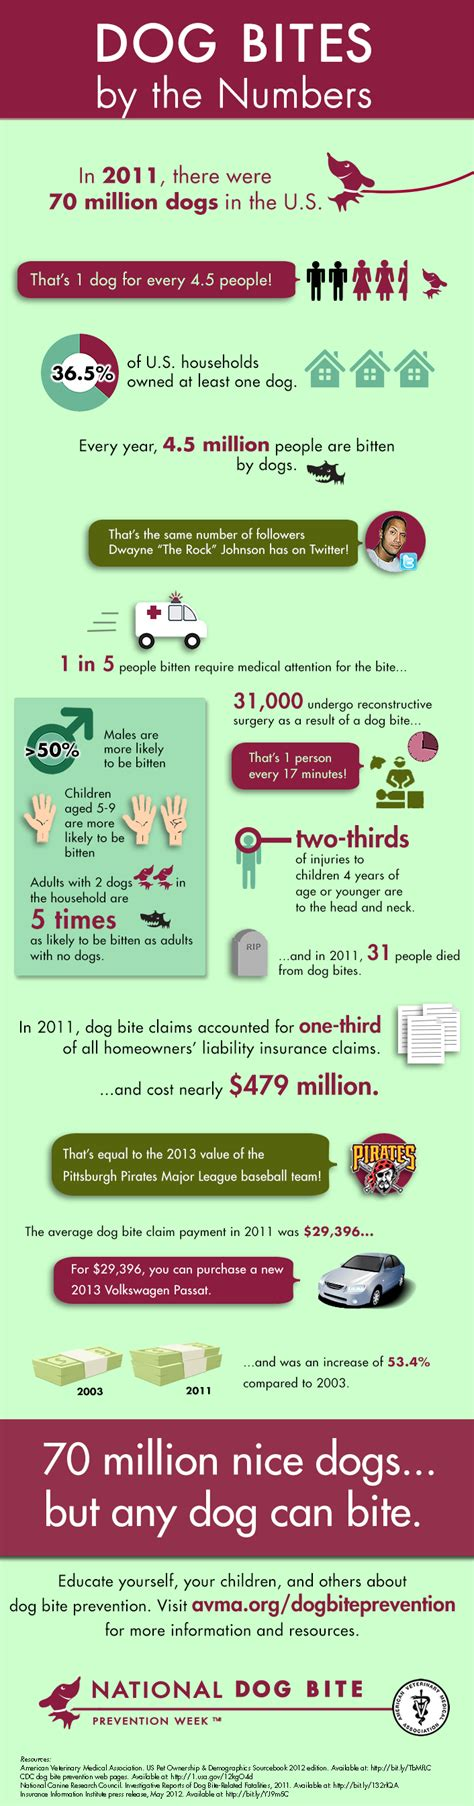 why do dogs bite their bites let s consider the root causes and prevention